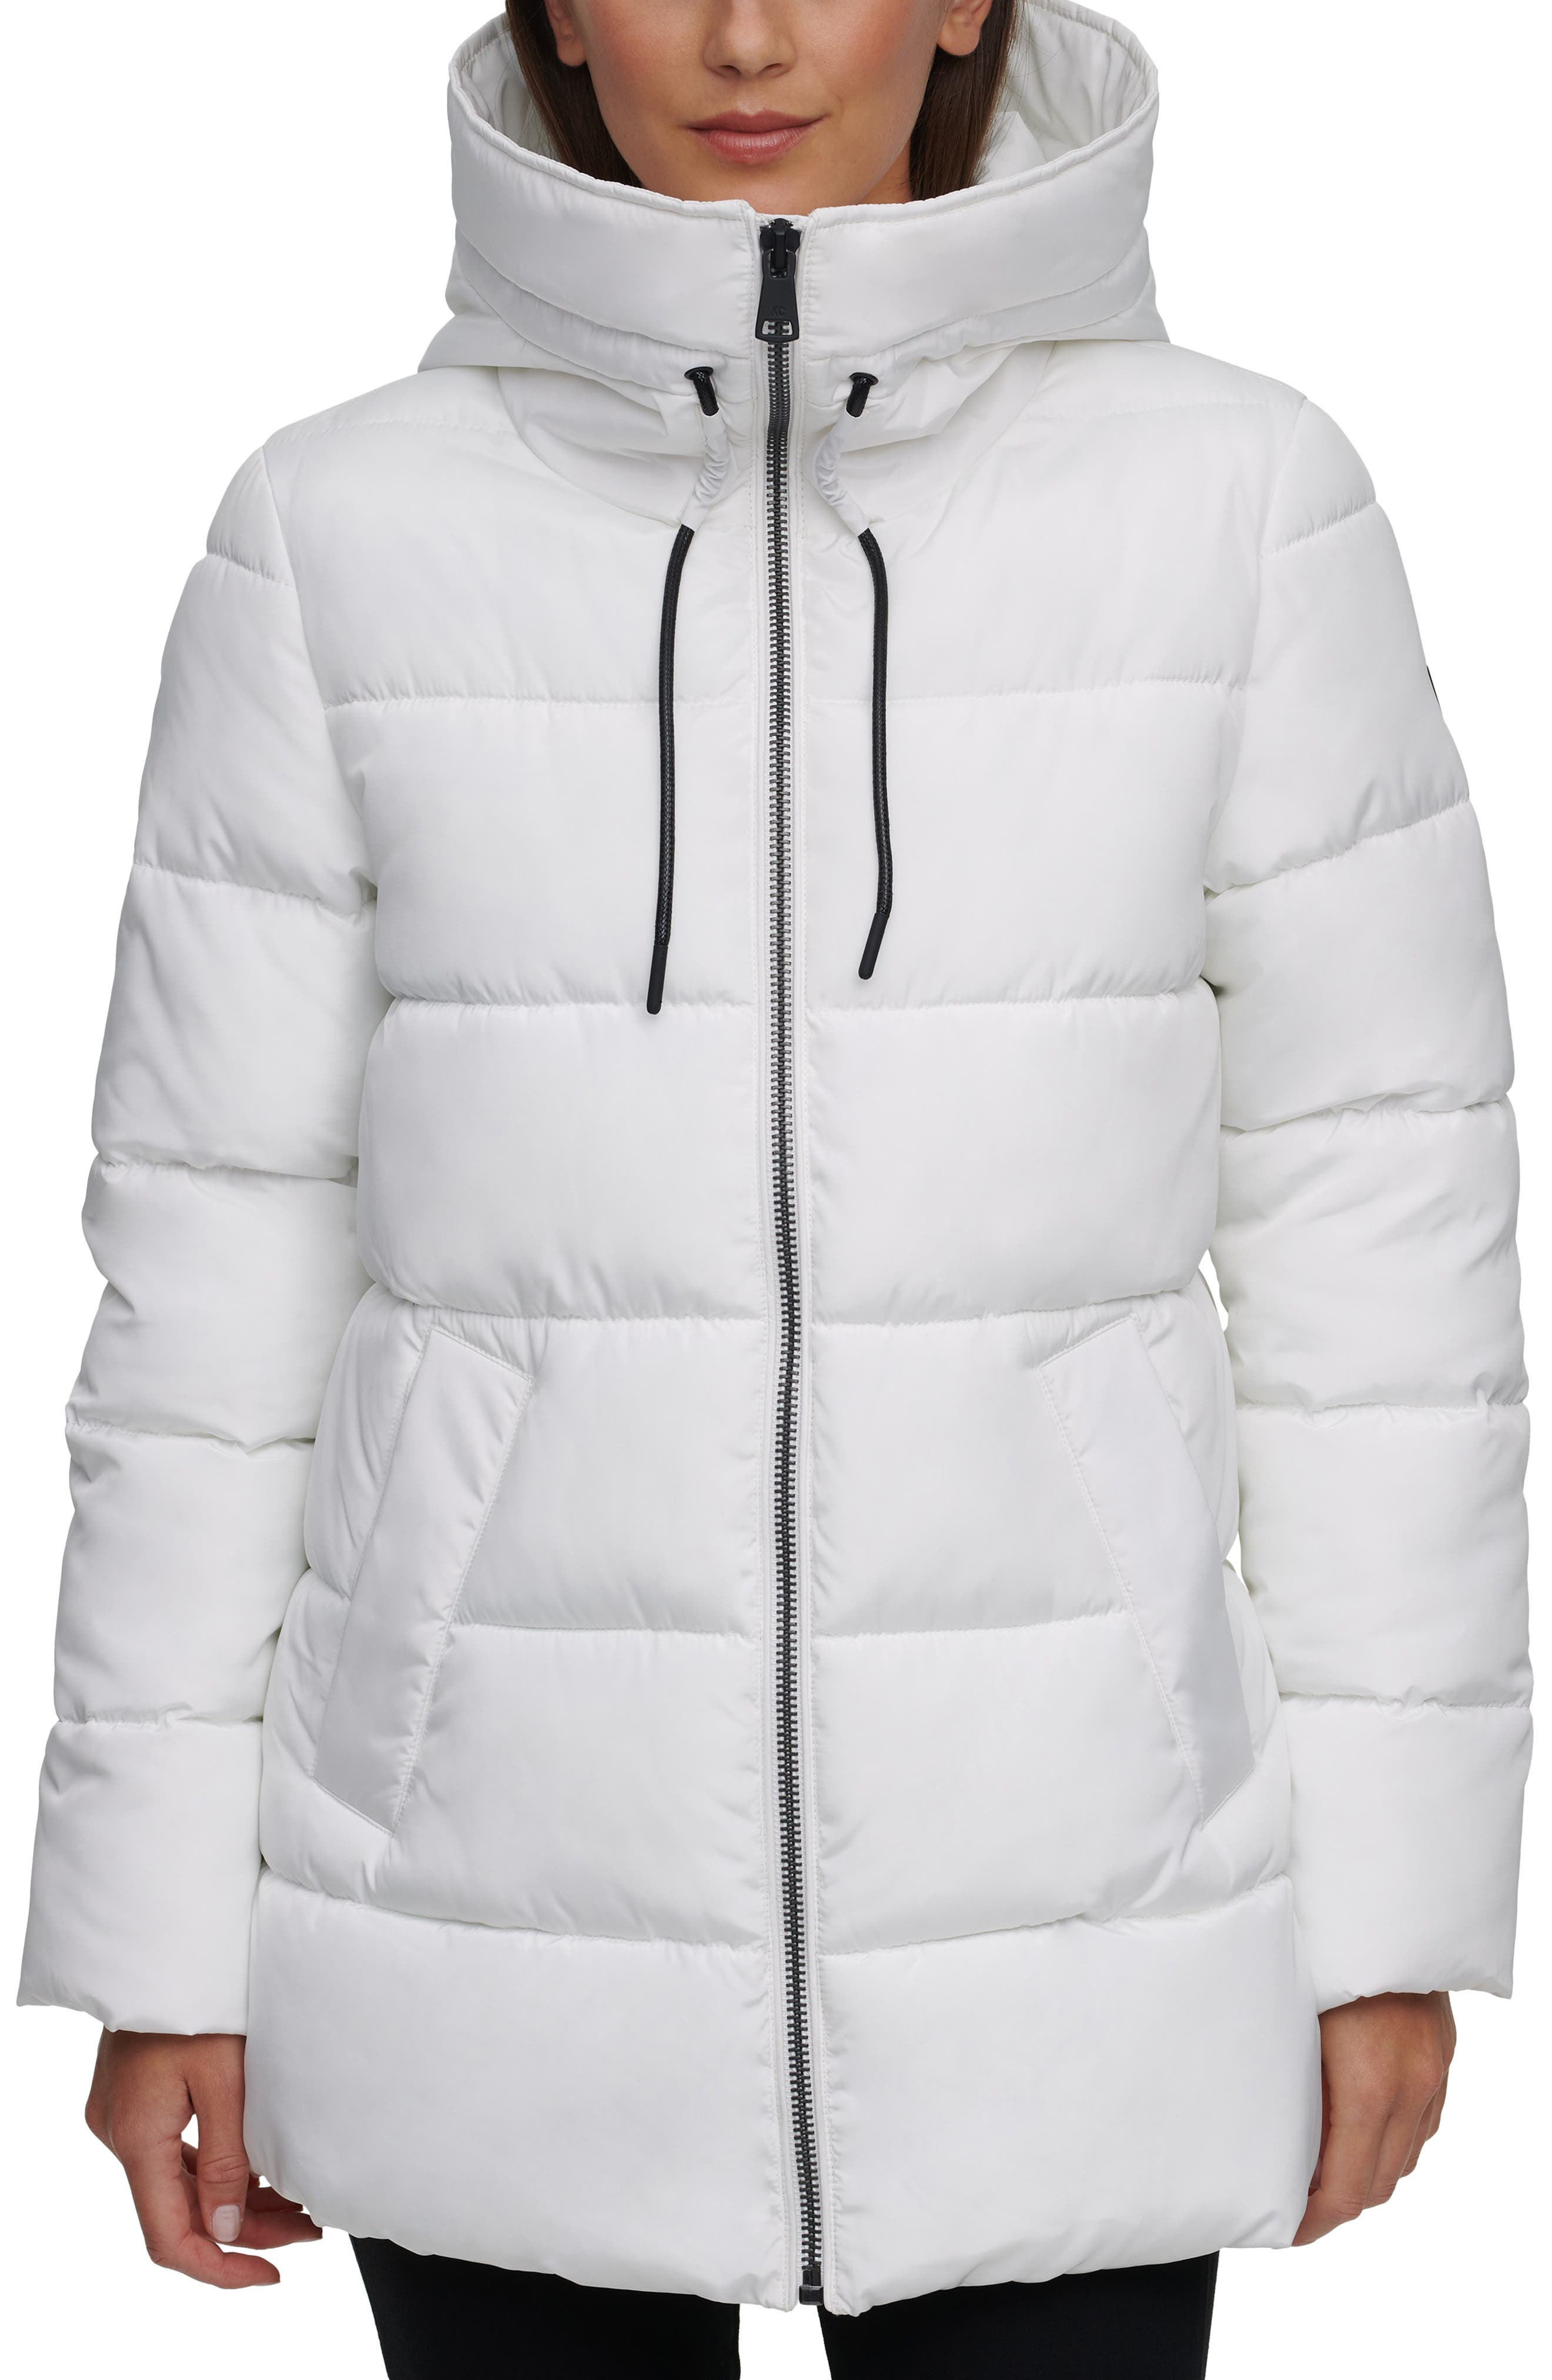 Stay cozy and chic in this lightweight puffer jacket that has a drawcord hood and lets you zip the collar all the way up for extra warmth. Style Name: Kenneth Cole New York Hooded Puffer Jacket (Women). Style Number: 6111984. Available in stores.